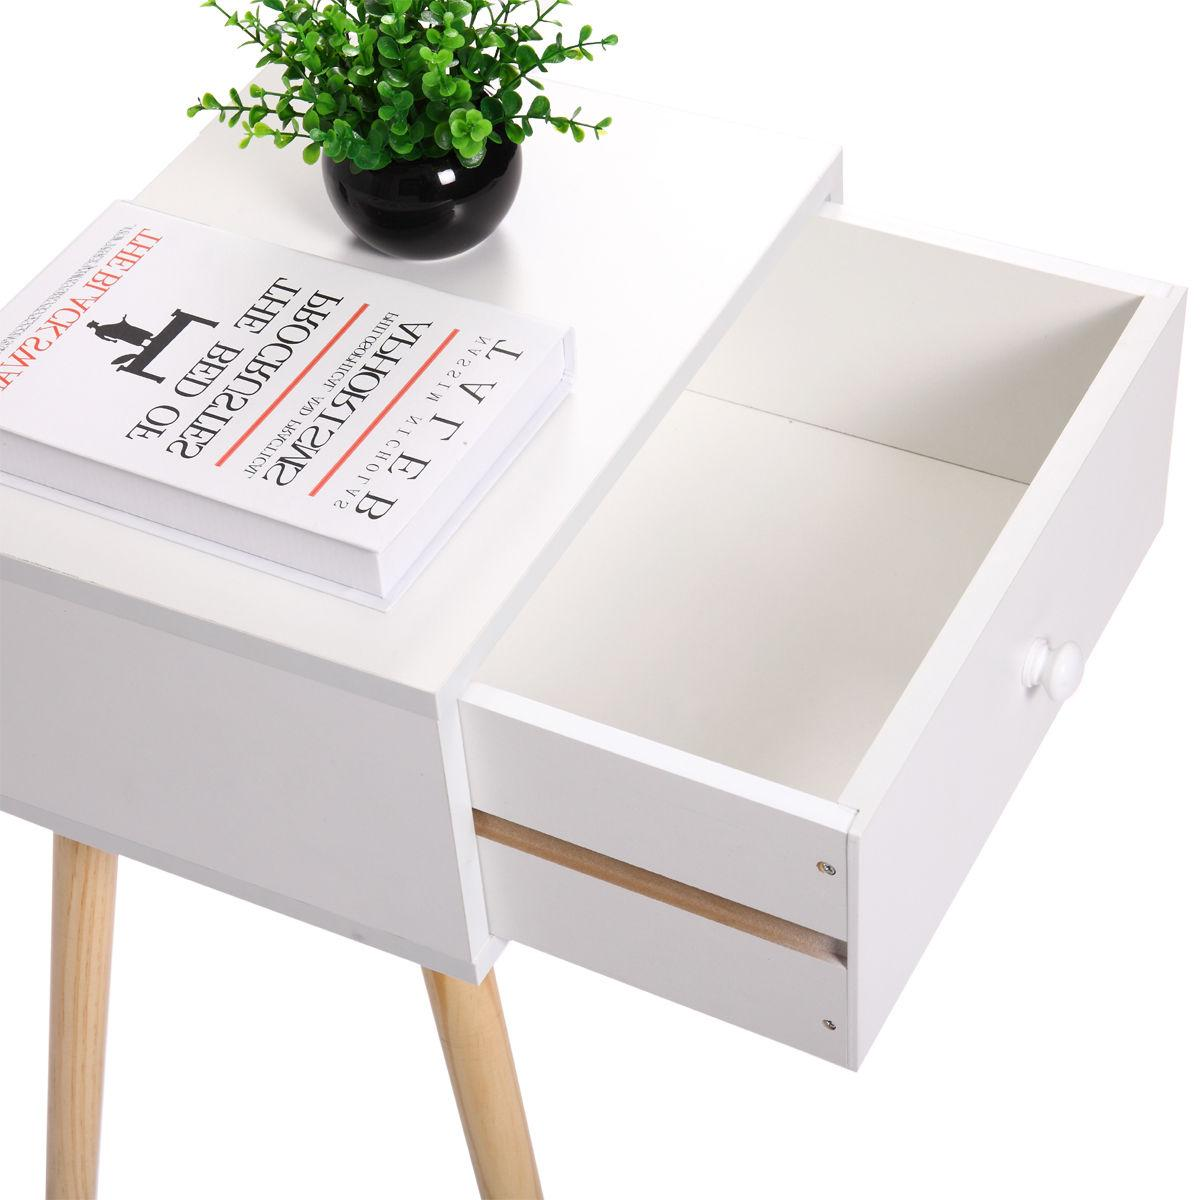 Wooden Tea Nightstand With Modern Retro Decor